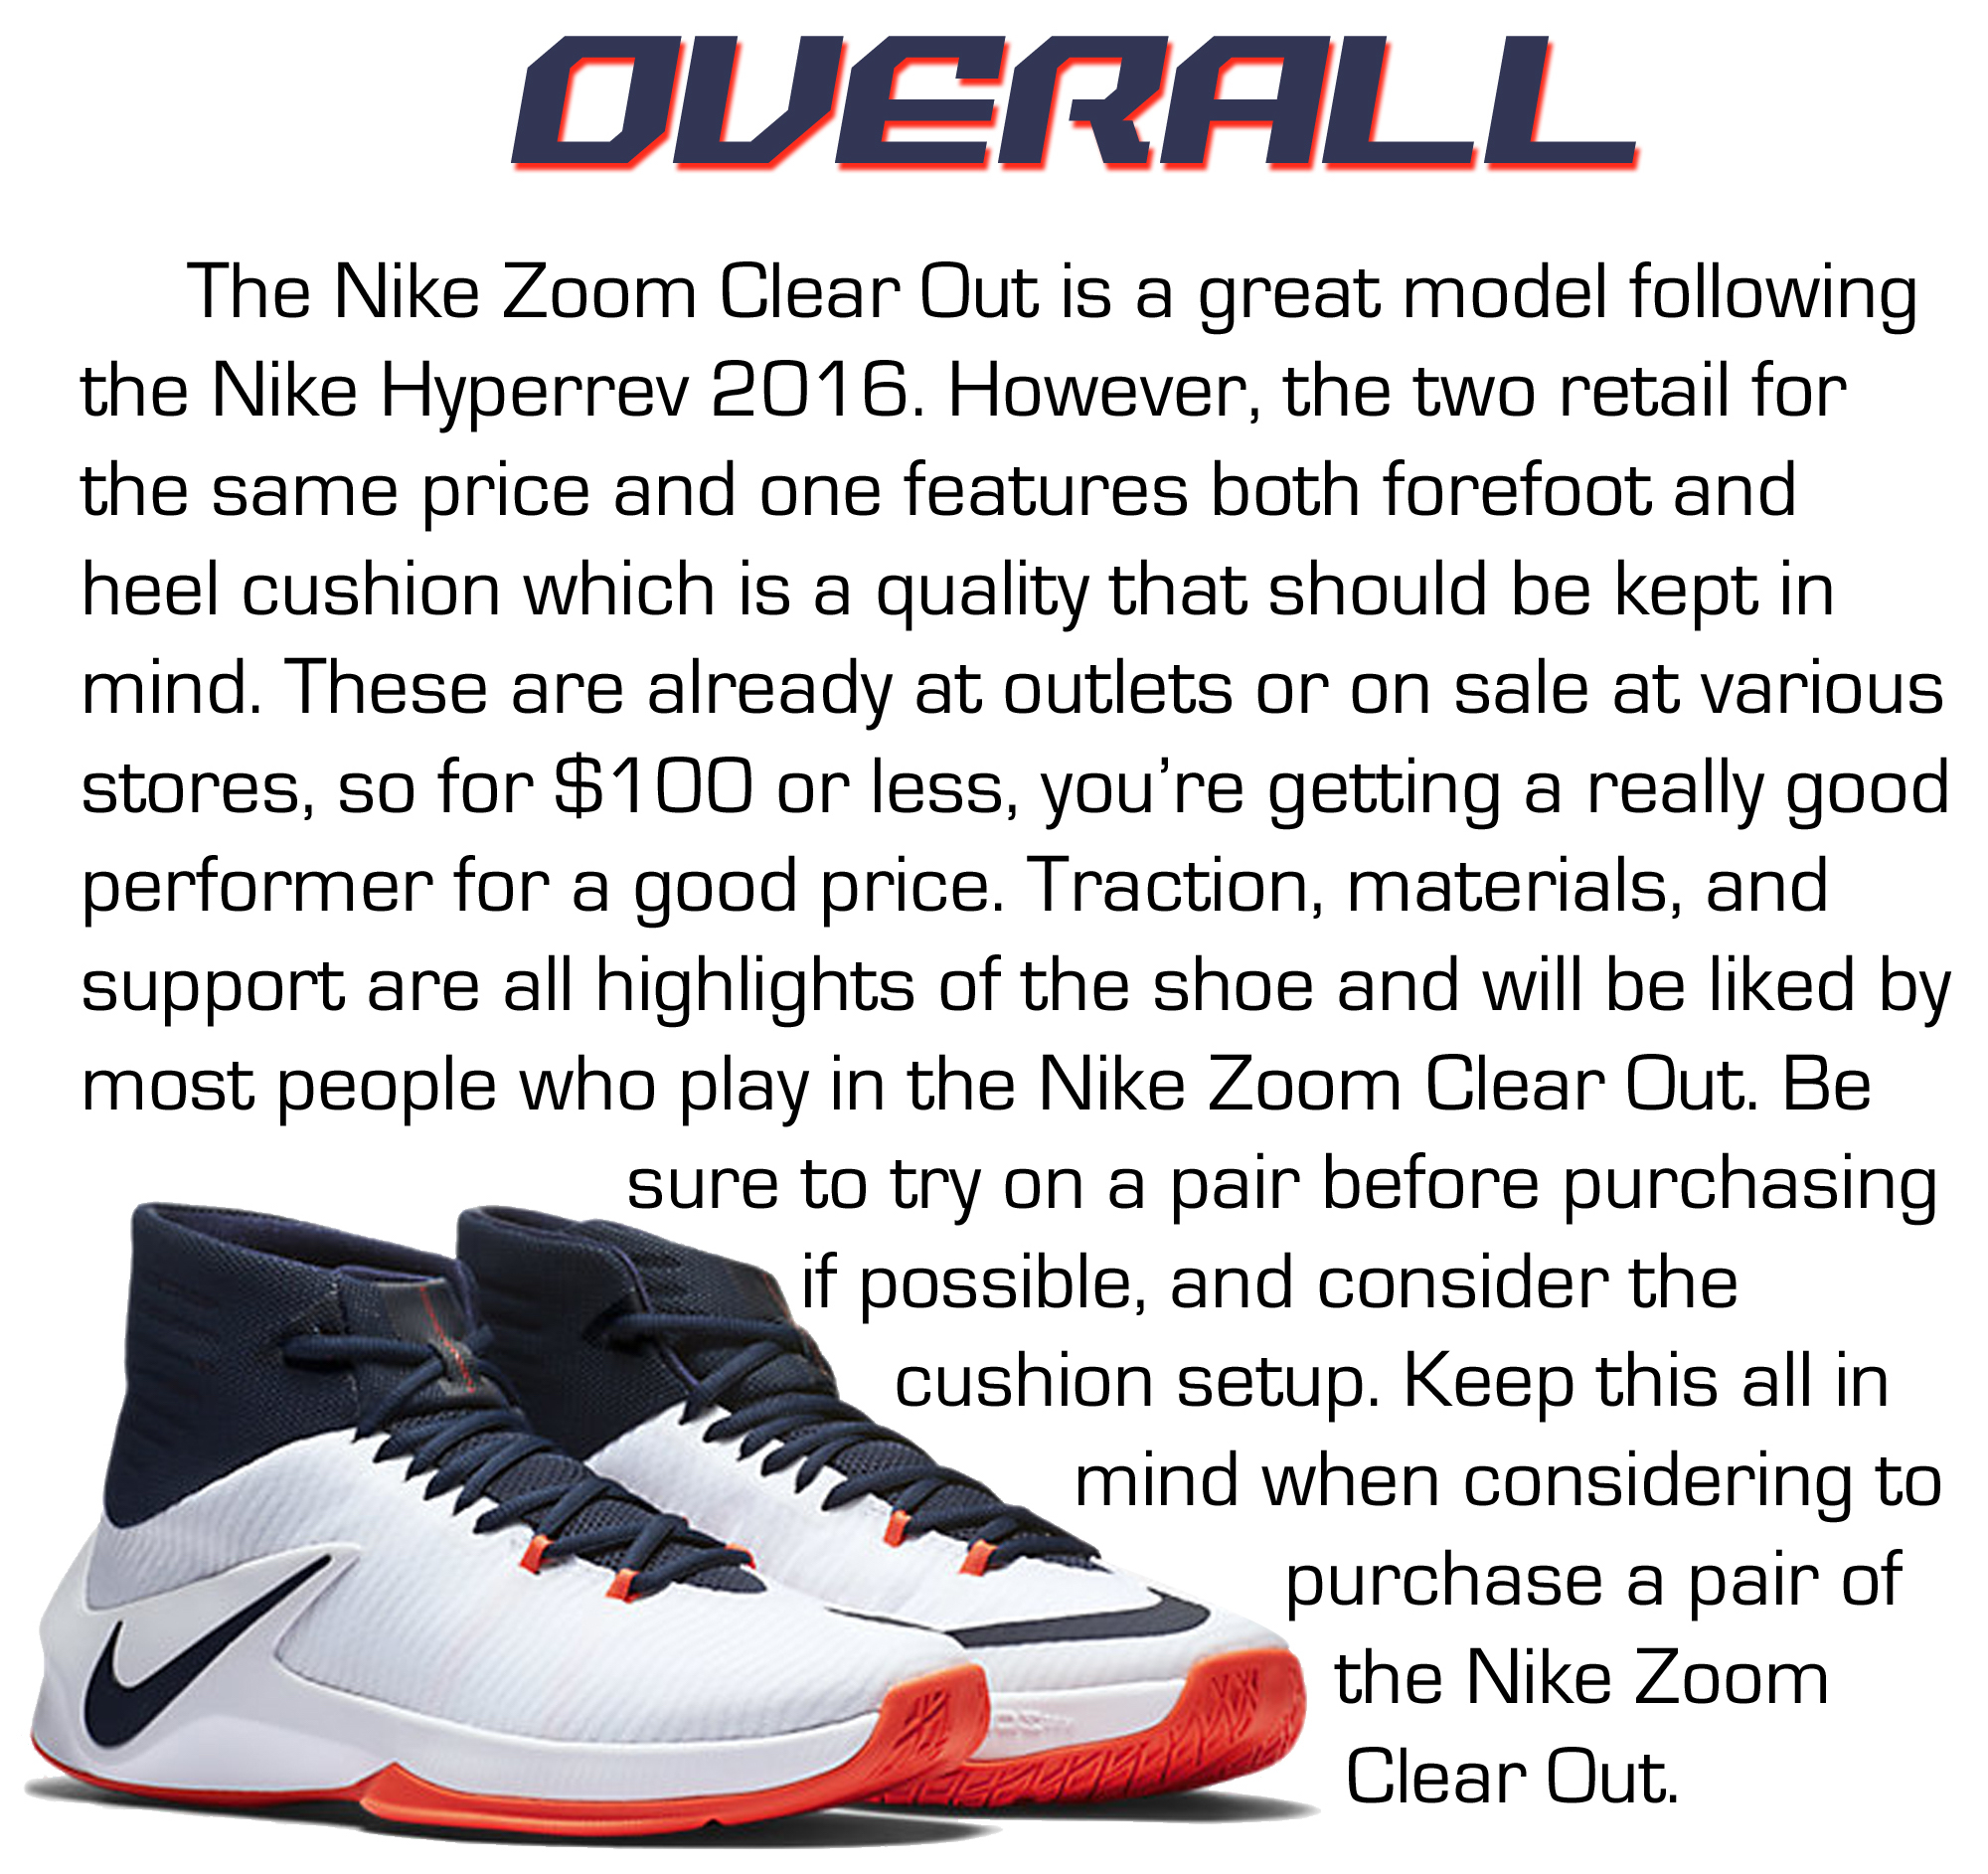 new products 73c3d c42c2 ... buy nike zoom clear out performance review 6 16947 56a5d